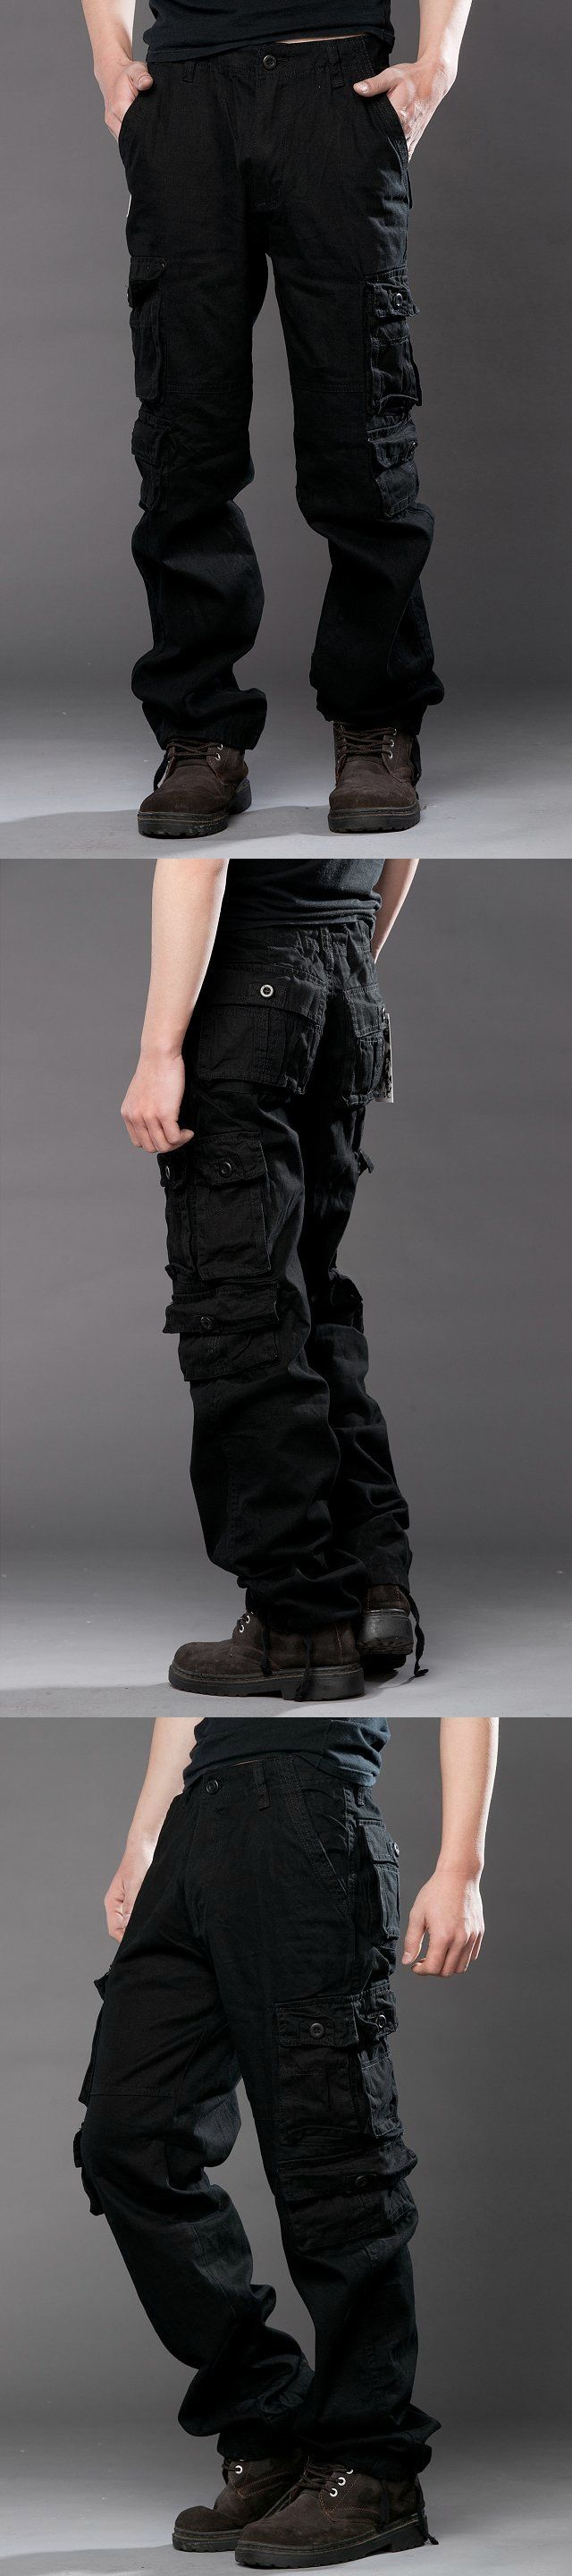 2018 New Men's Tactical Pants Military Man Men Camouflage Cargo Pants Male Overalls Casual Trousers Black Plus Large Size 38 hot